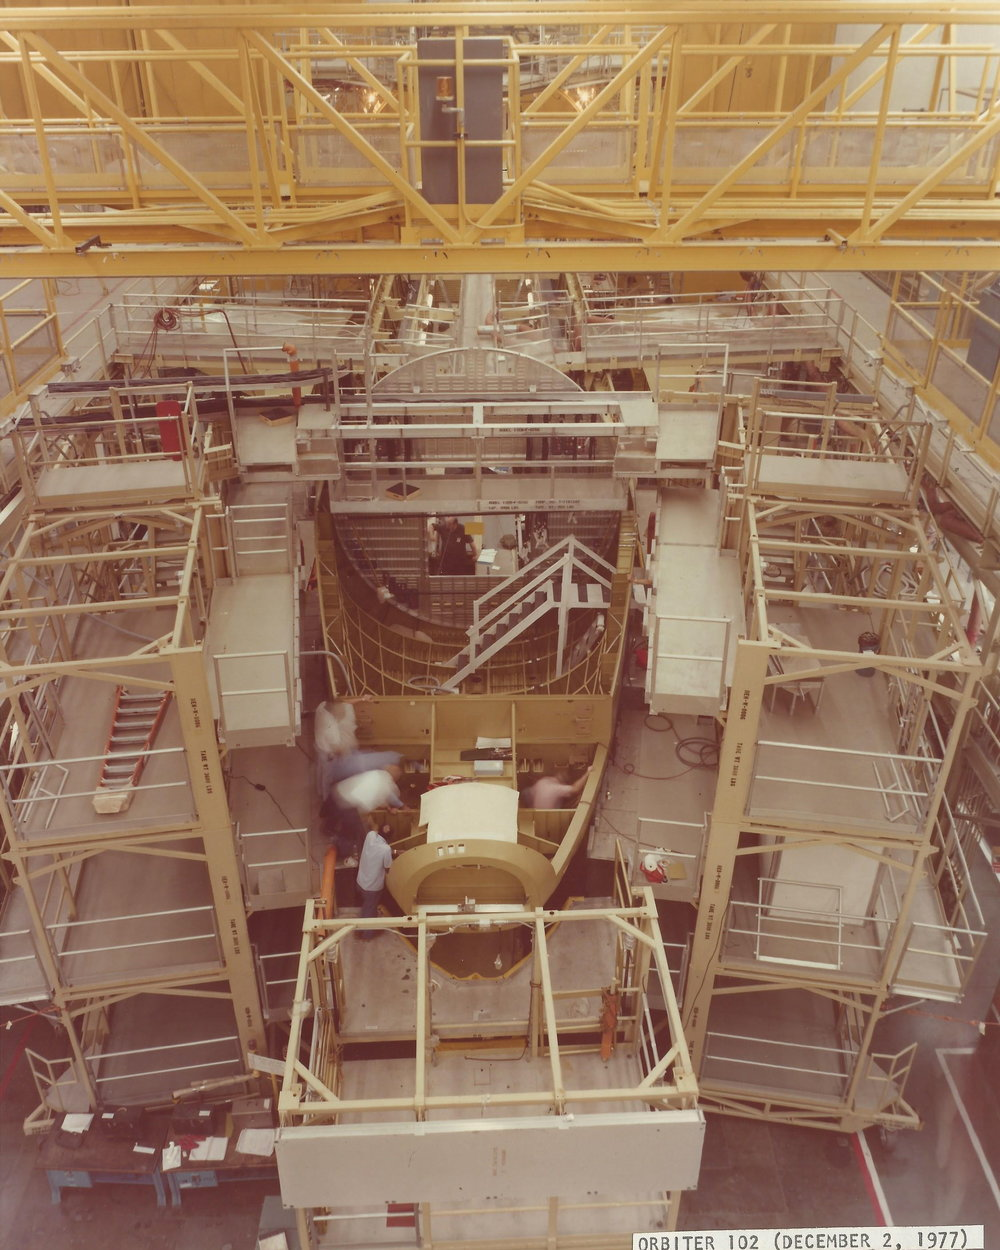 Orbiter 102 Crew Module April 1977 sub-system development a Dow 12.jpg